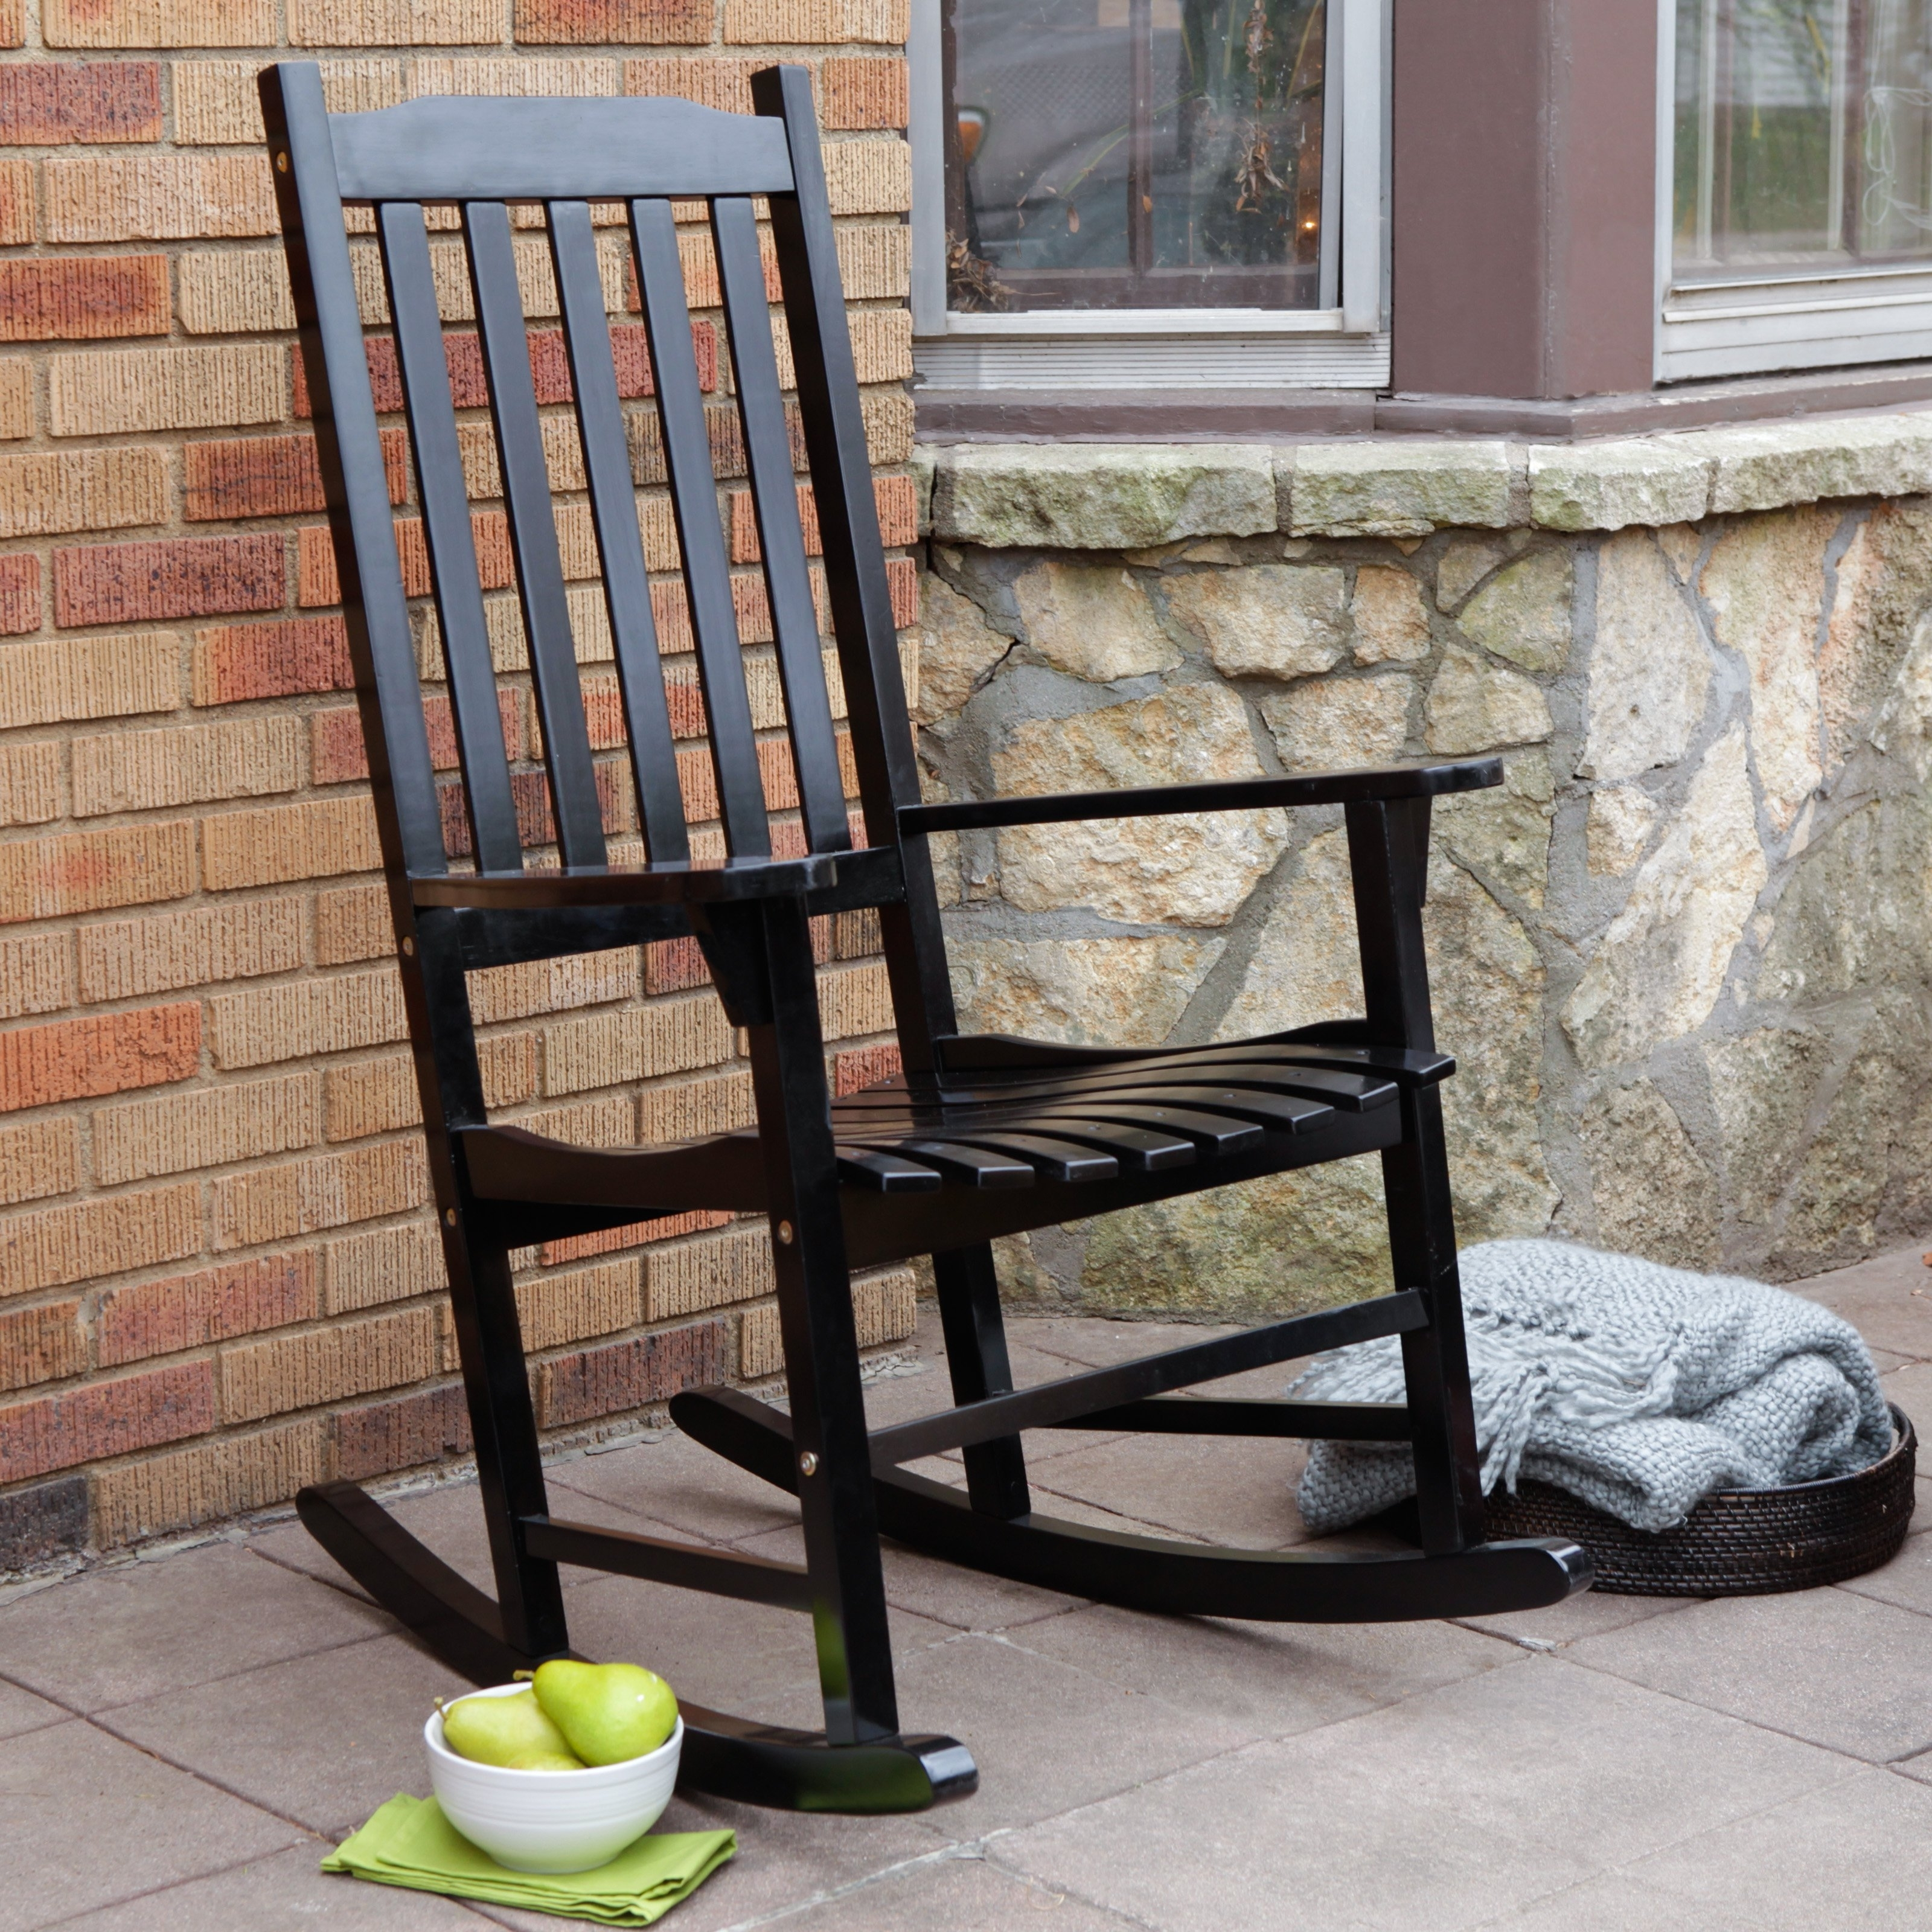 Most Recent Popularity Gaining Outdoor Rocking Chairs – Carehomedecor Throughout Unique Outdoor Rocking Chairs (View 5 of 20)